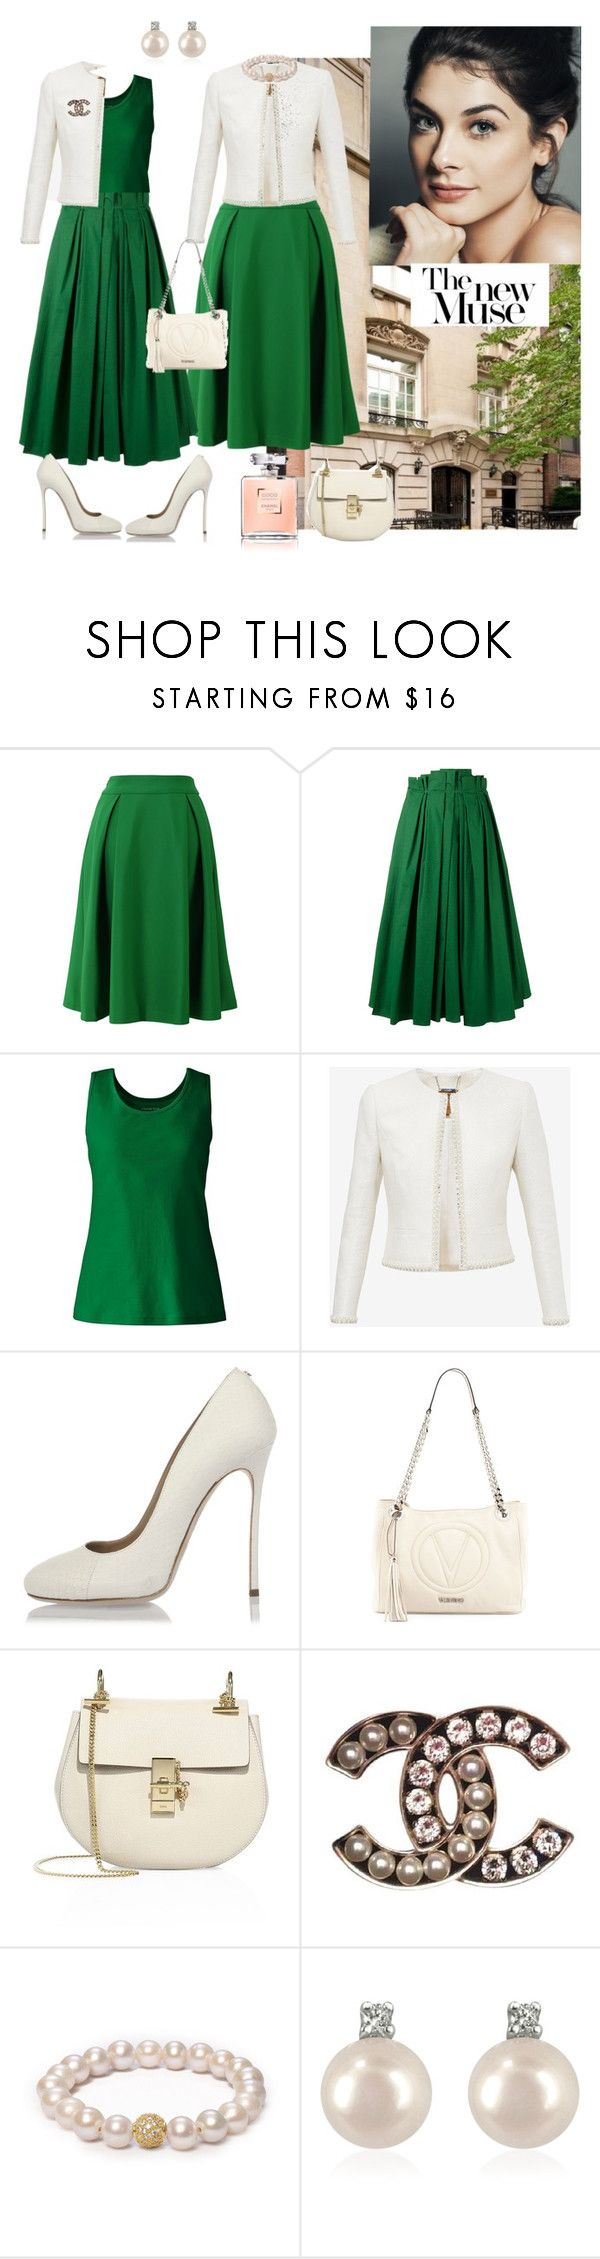 CHANEL by mariya-kovlyar on Polyvore featuring мода, Lands' End, Ted Baker, Rochas, Chicwish, Dsquared2, Chloé, Mario Valentino, Forzieri and ORA Pearls